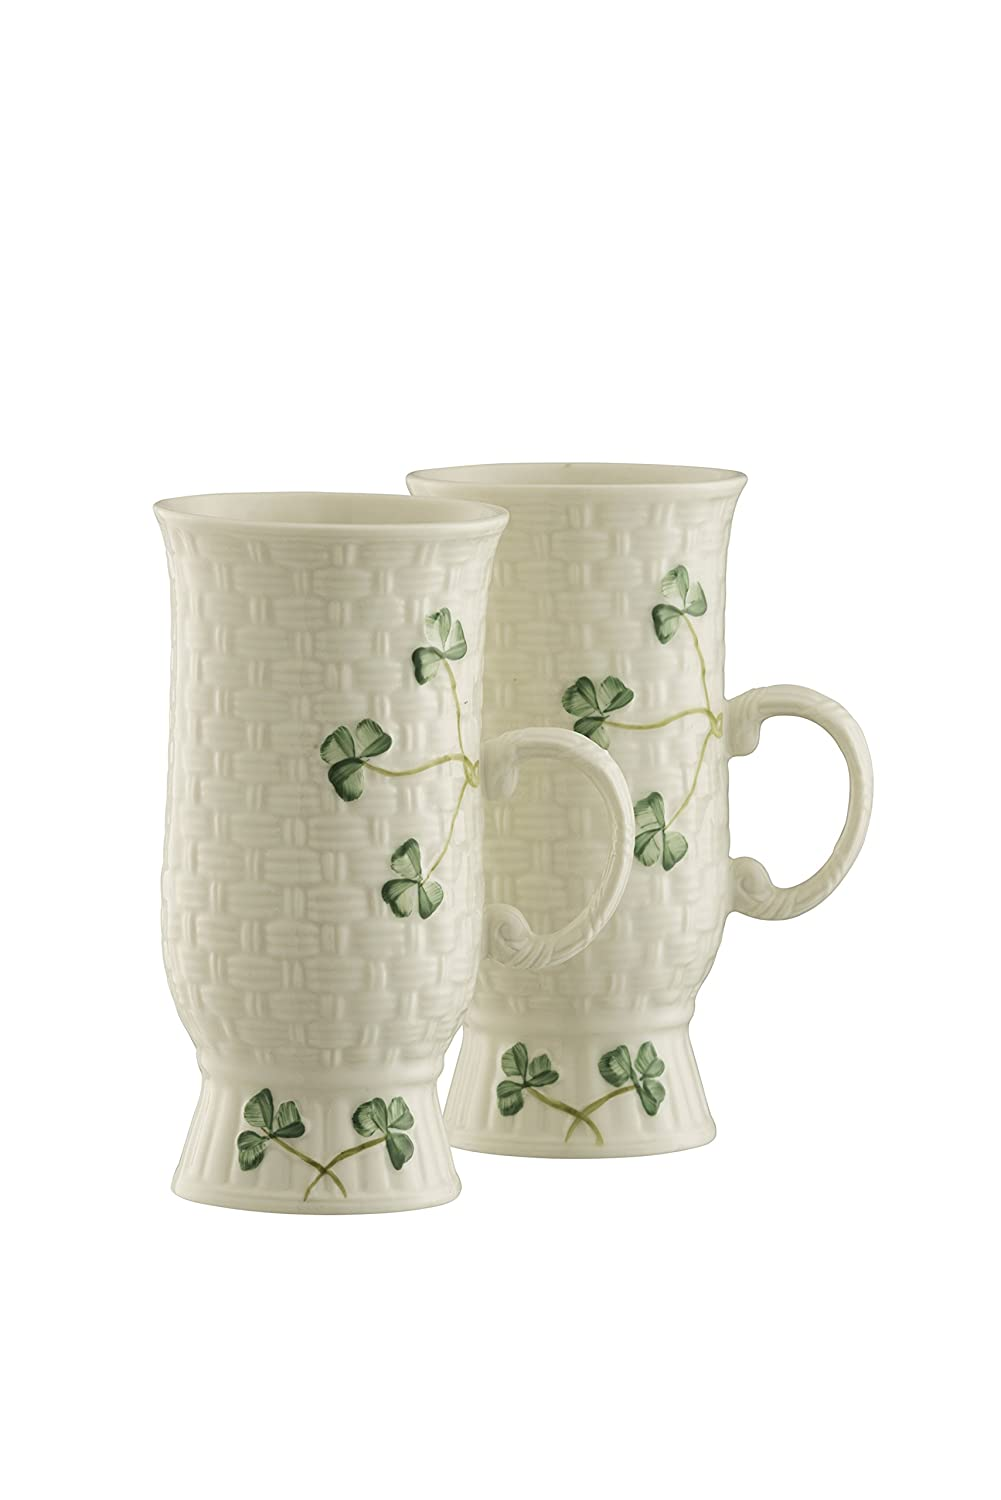 Belleek Irish Coffee Mugs Pair Medium White 2529